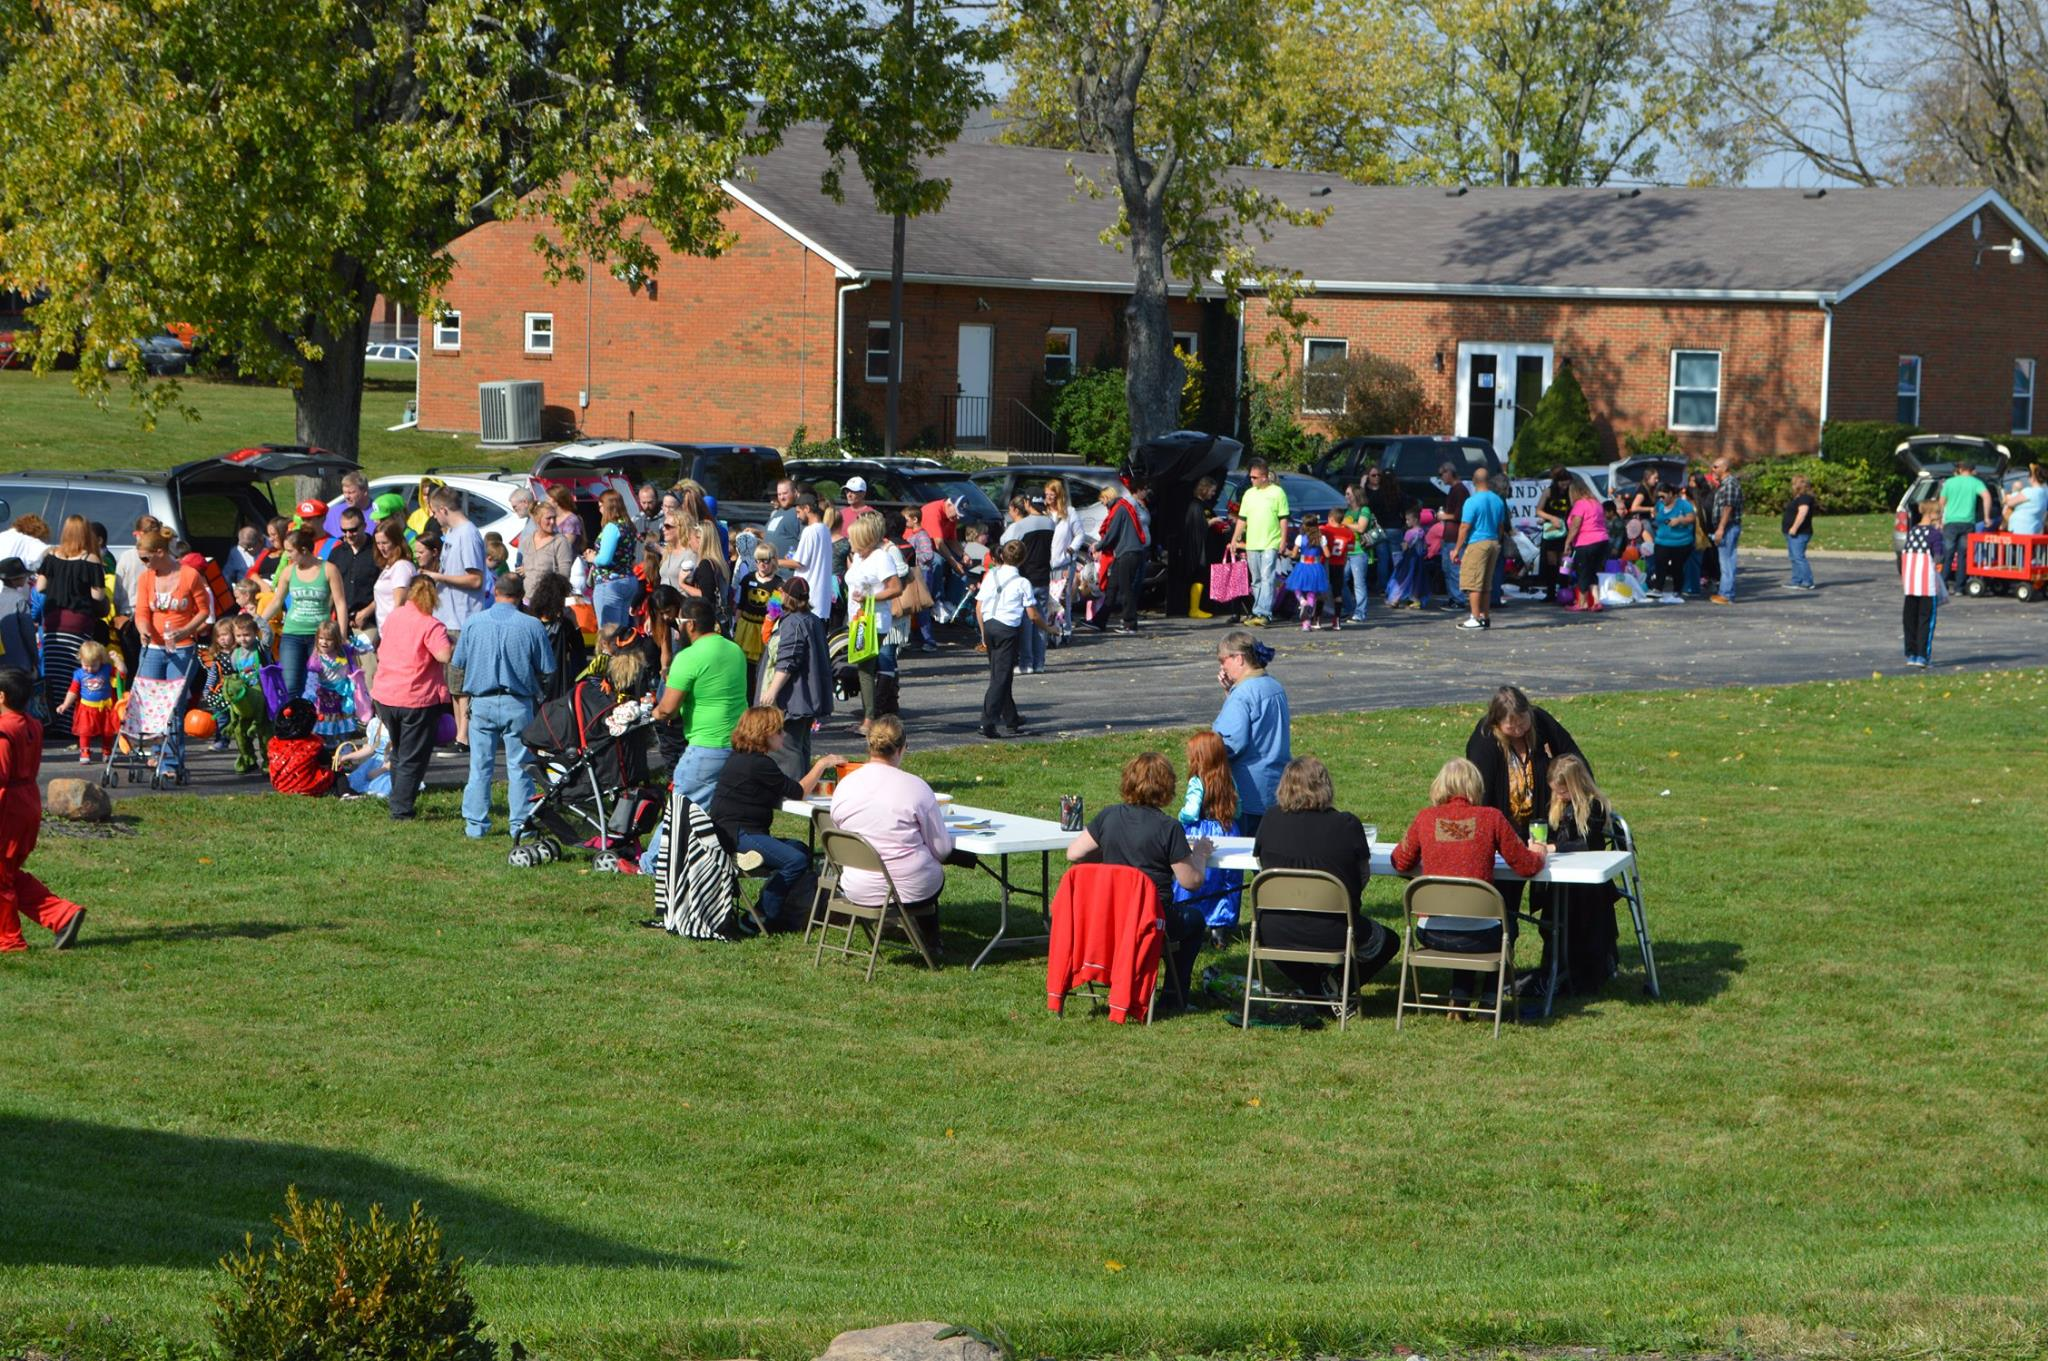 Kids and adults enjoying Crossroad's 2016 Trunk n Treat